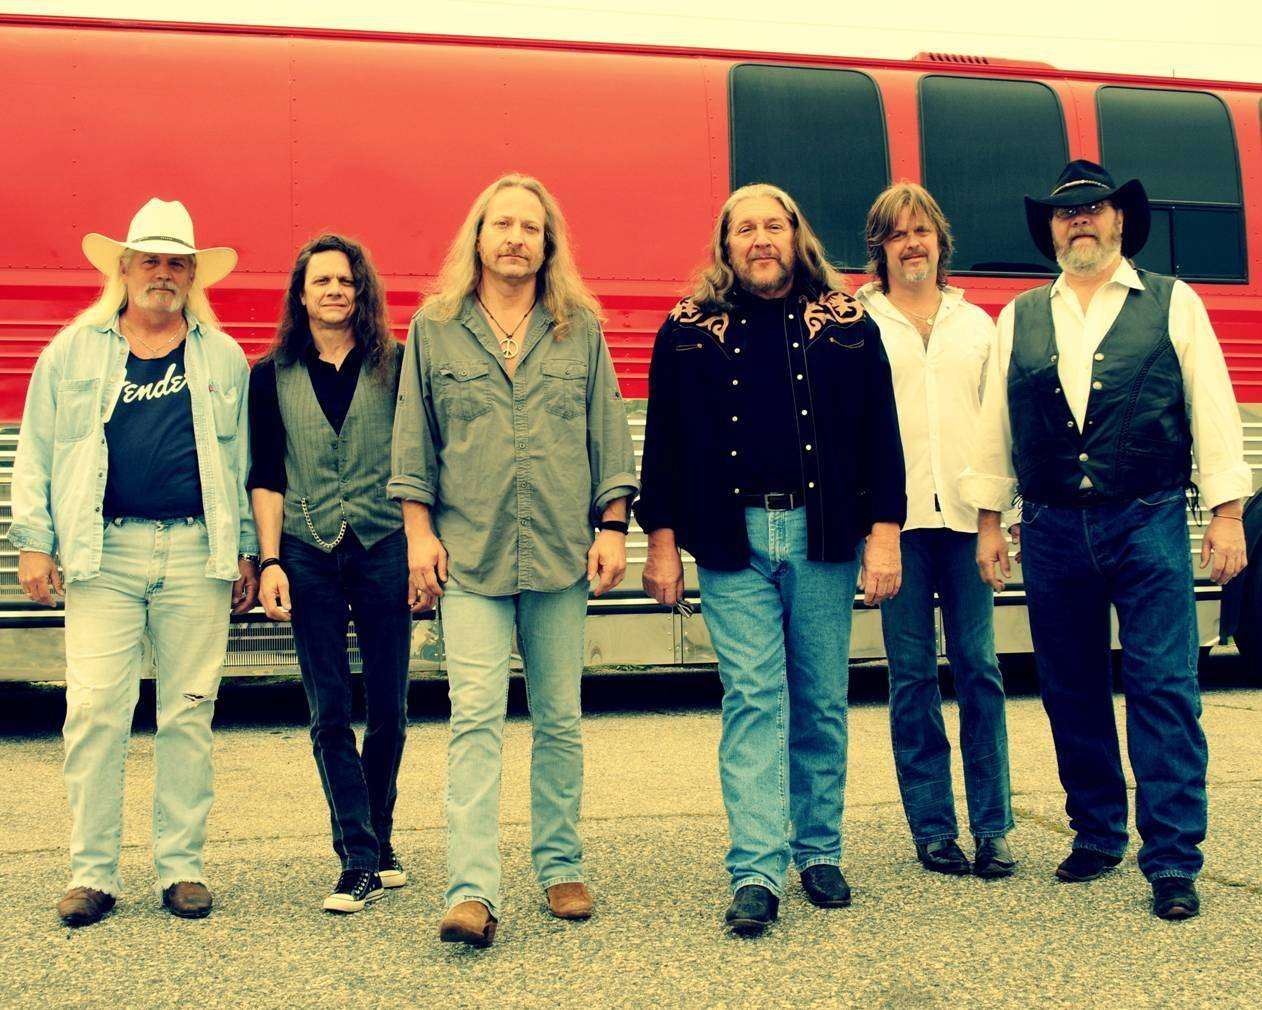 The Marshall Tucker Band appears in concert with other music groups at Festival Park in Elgin on Sunday, Aug. 3.